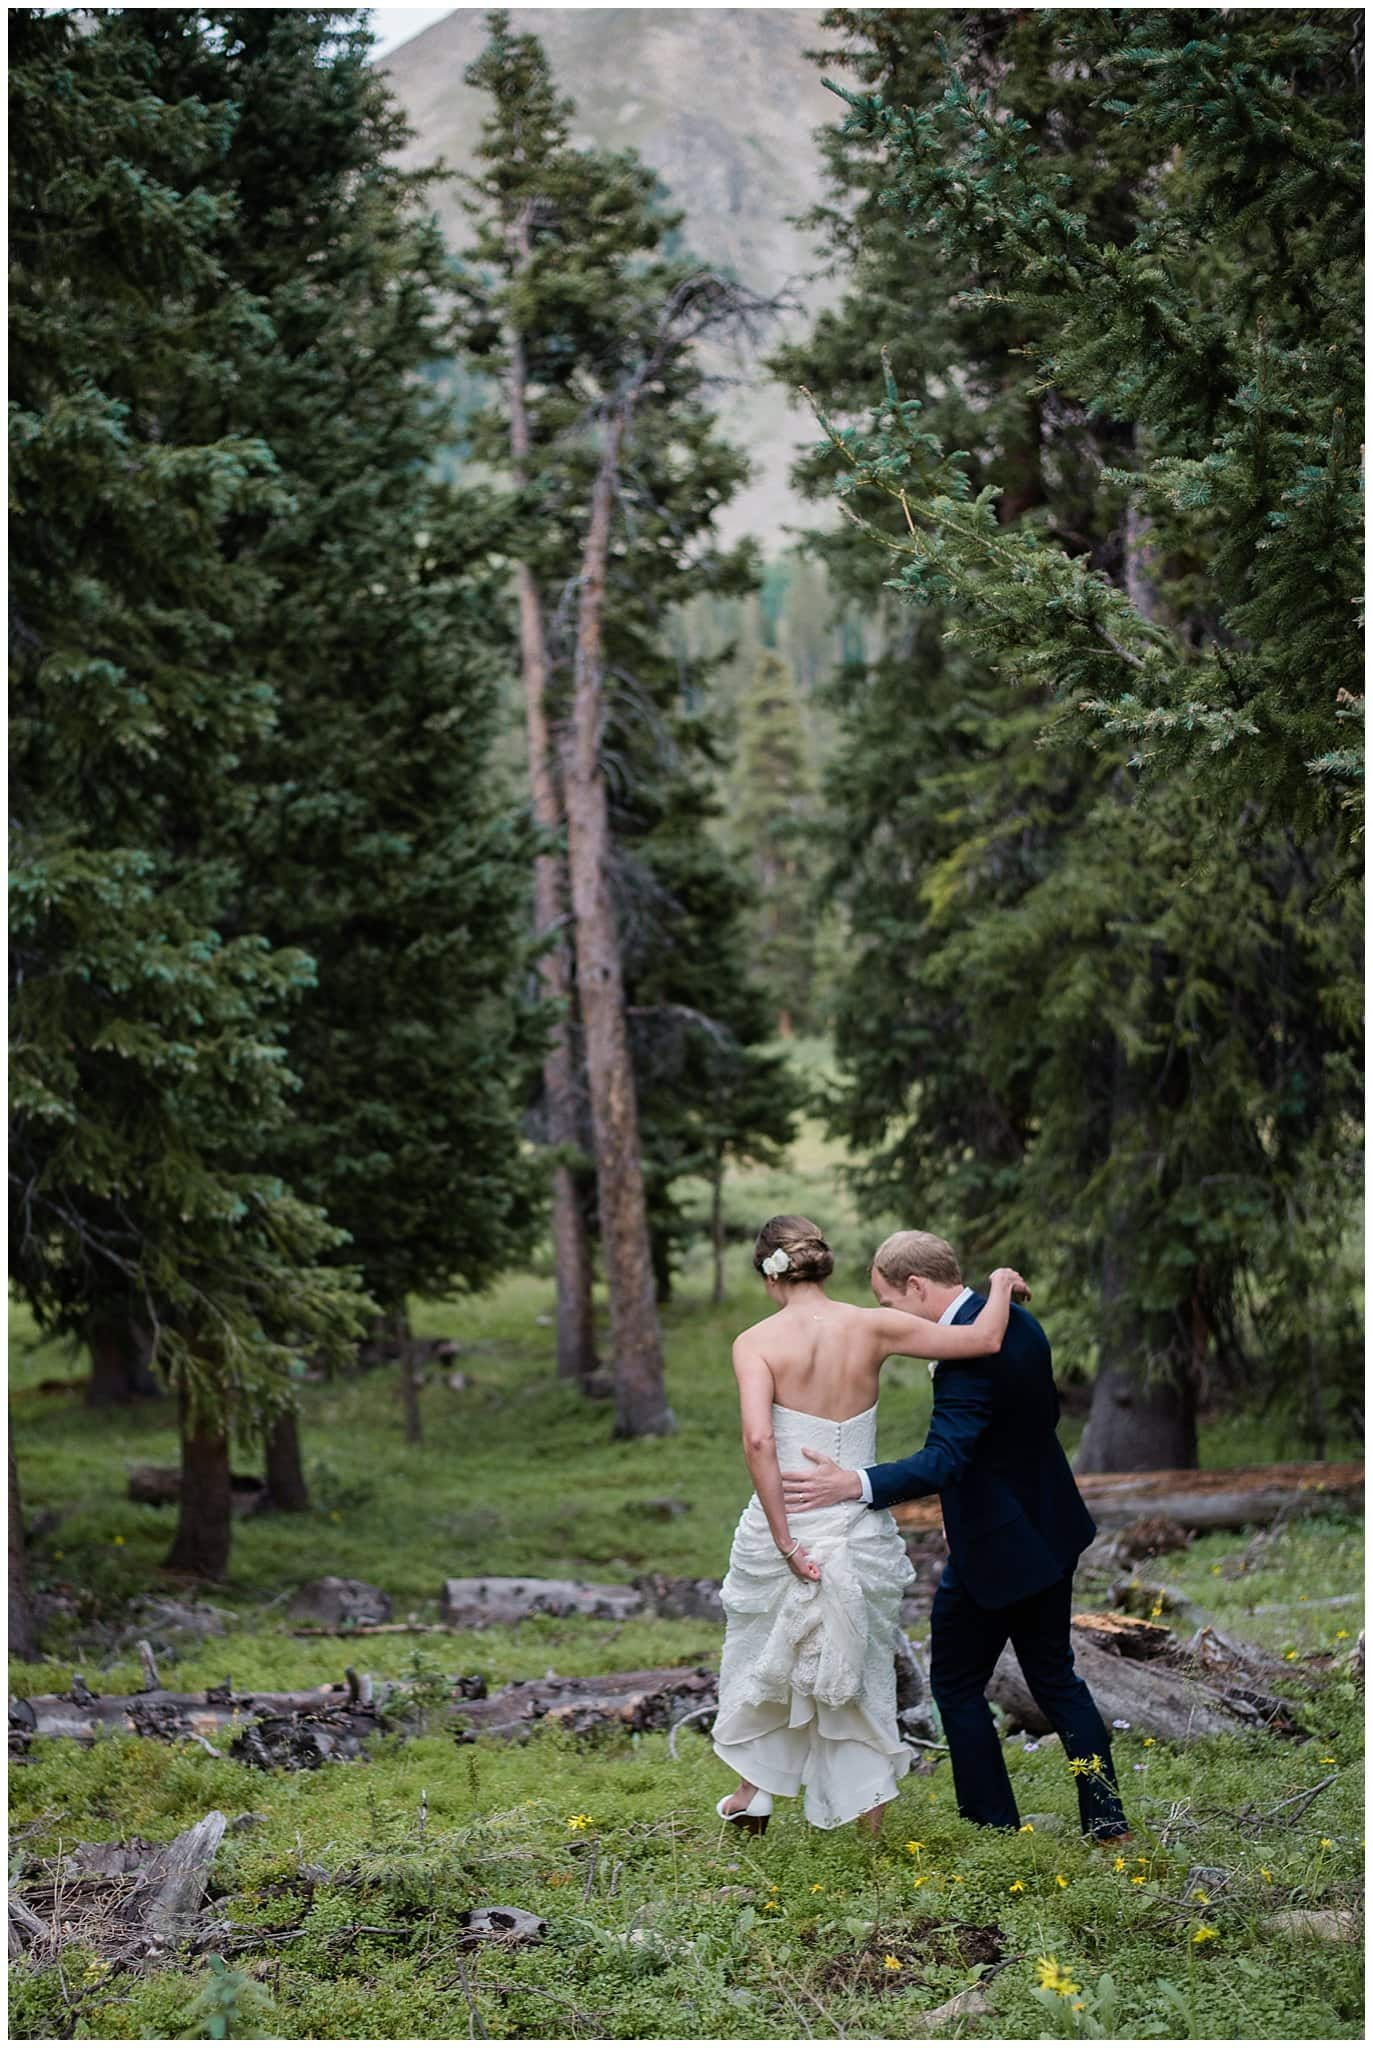 groom helping bride walk in forest at Arapahoe Basin Black Mountain Lodge Wedding by Denver Wedding Photographer Jennie Crate